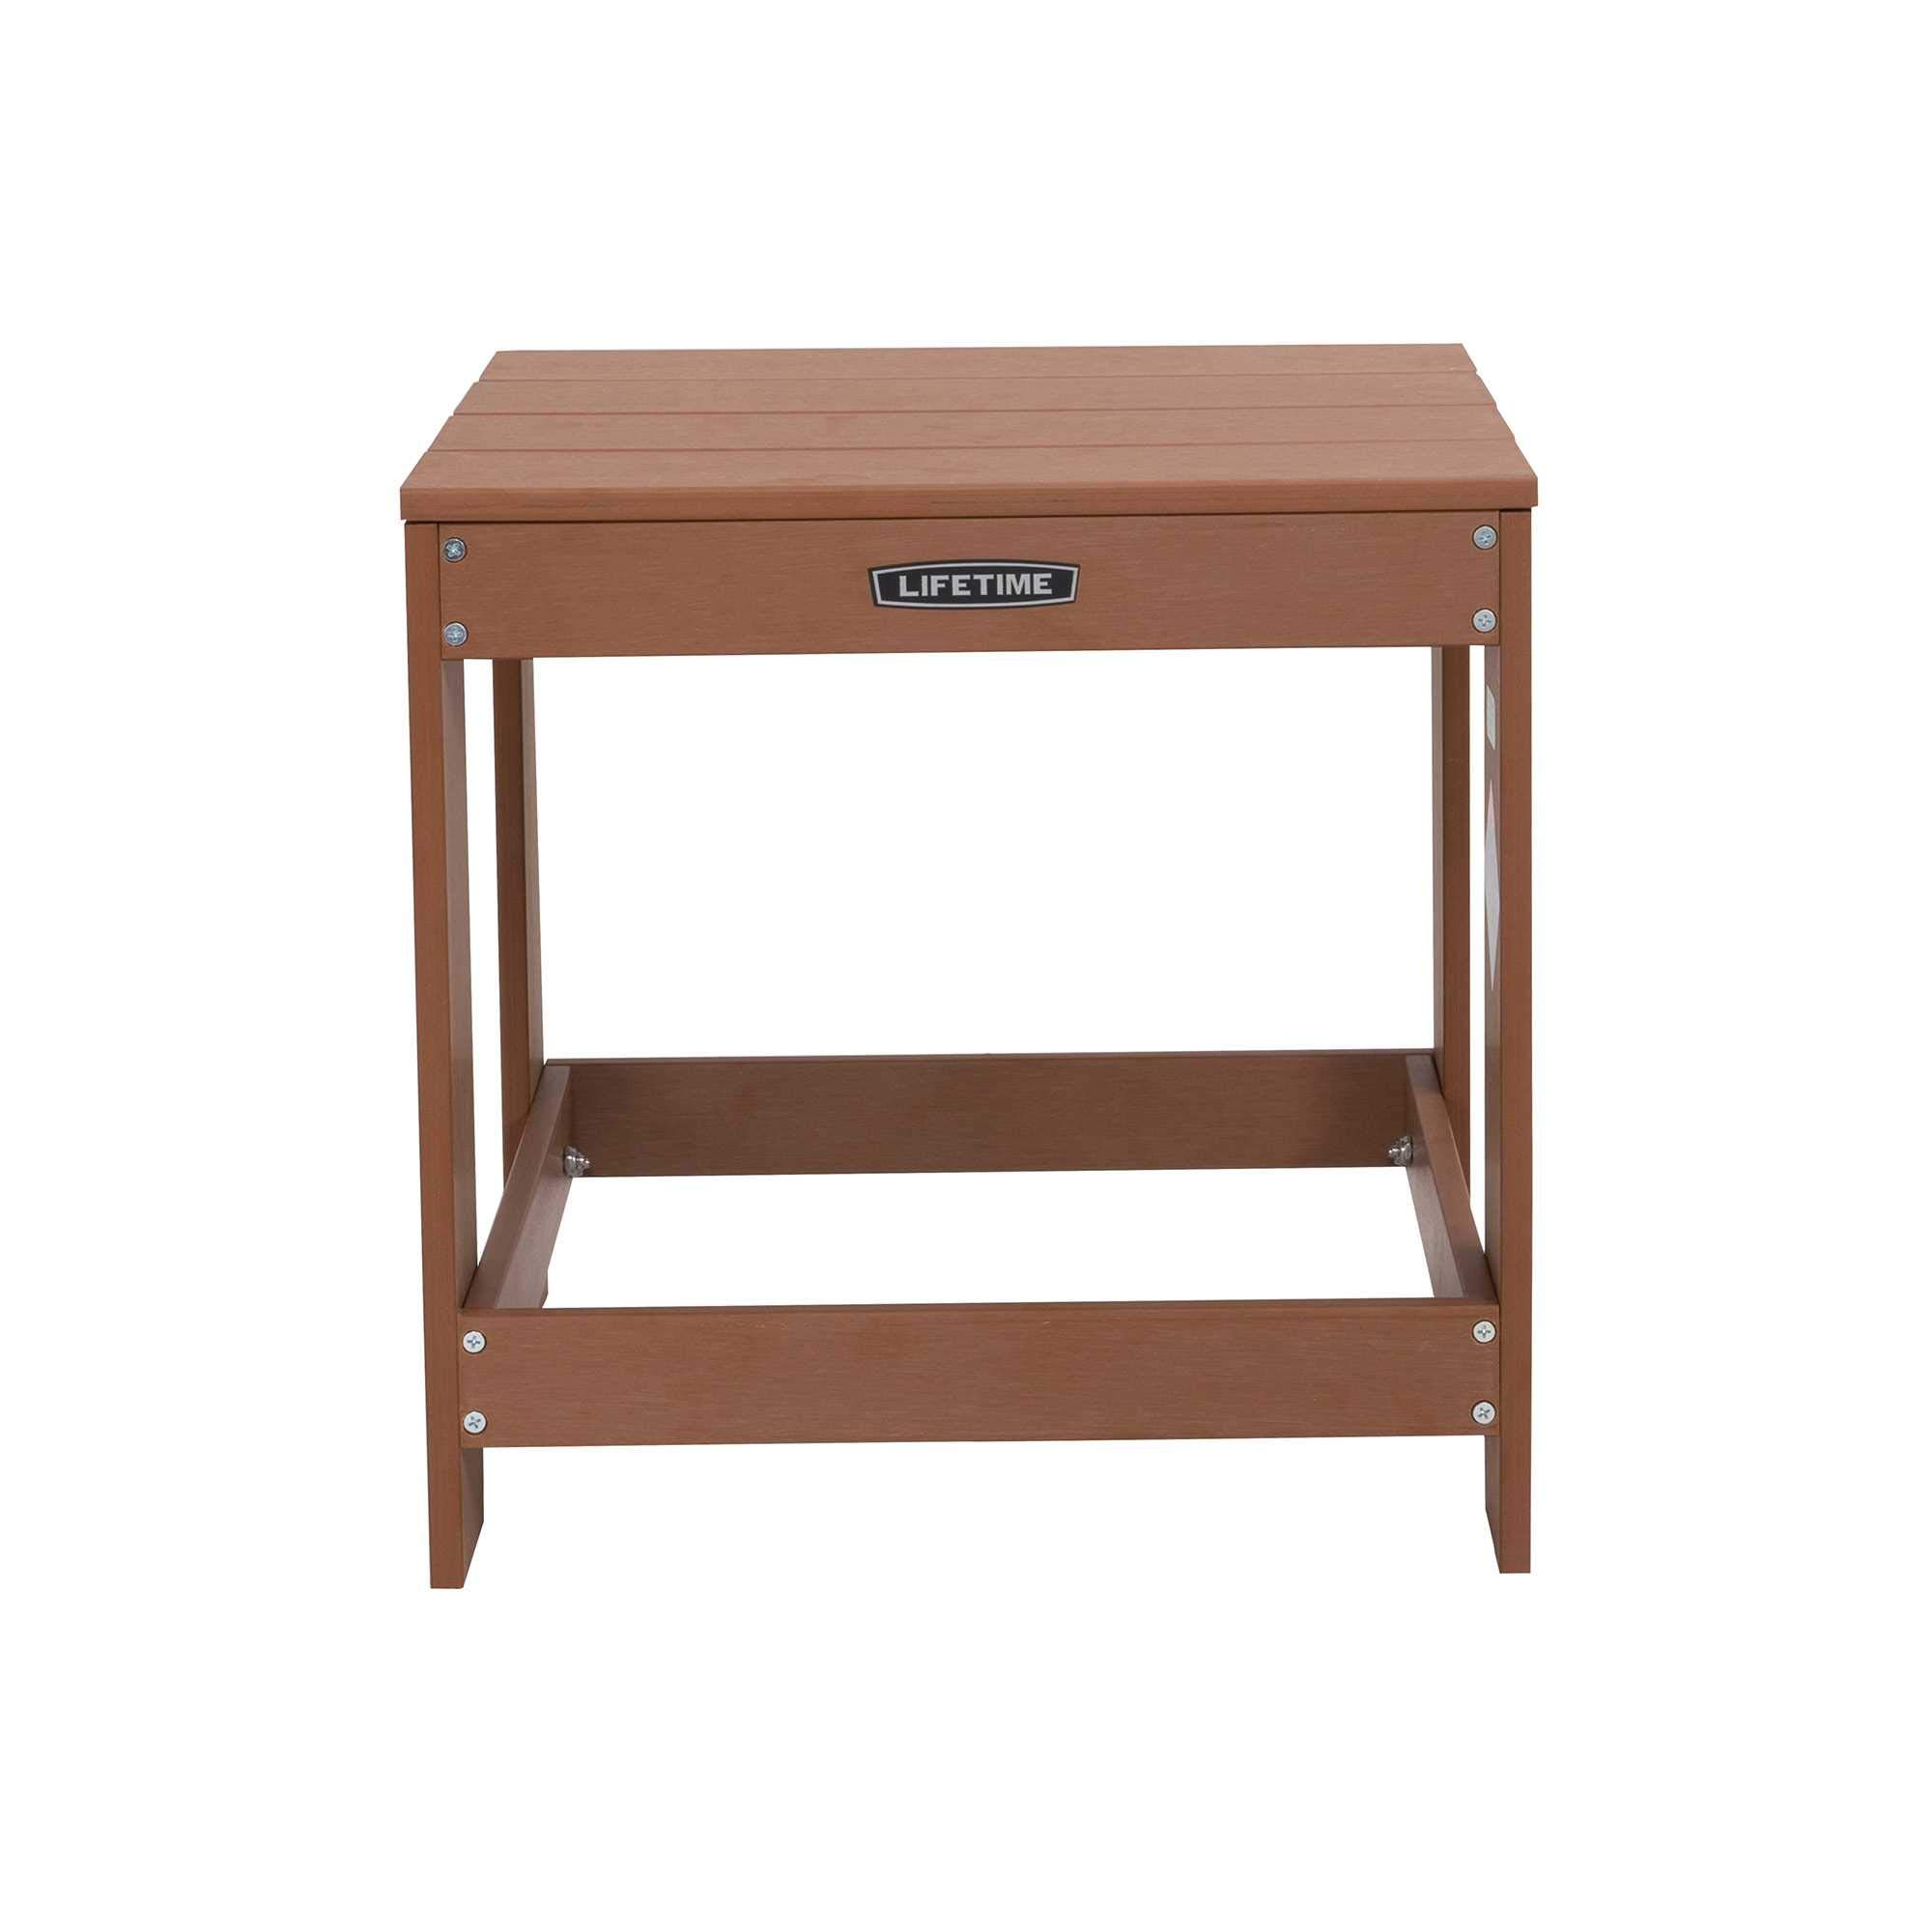 Lifetime 60246 Adirondack Table by Lifetime